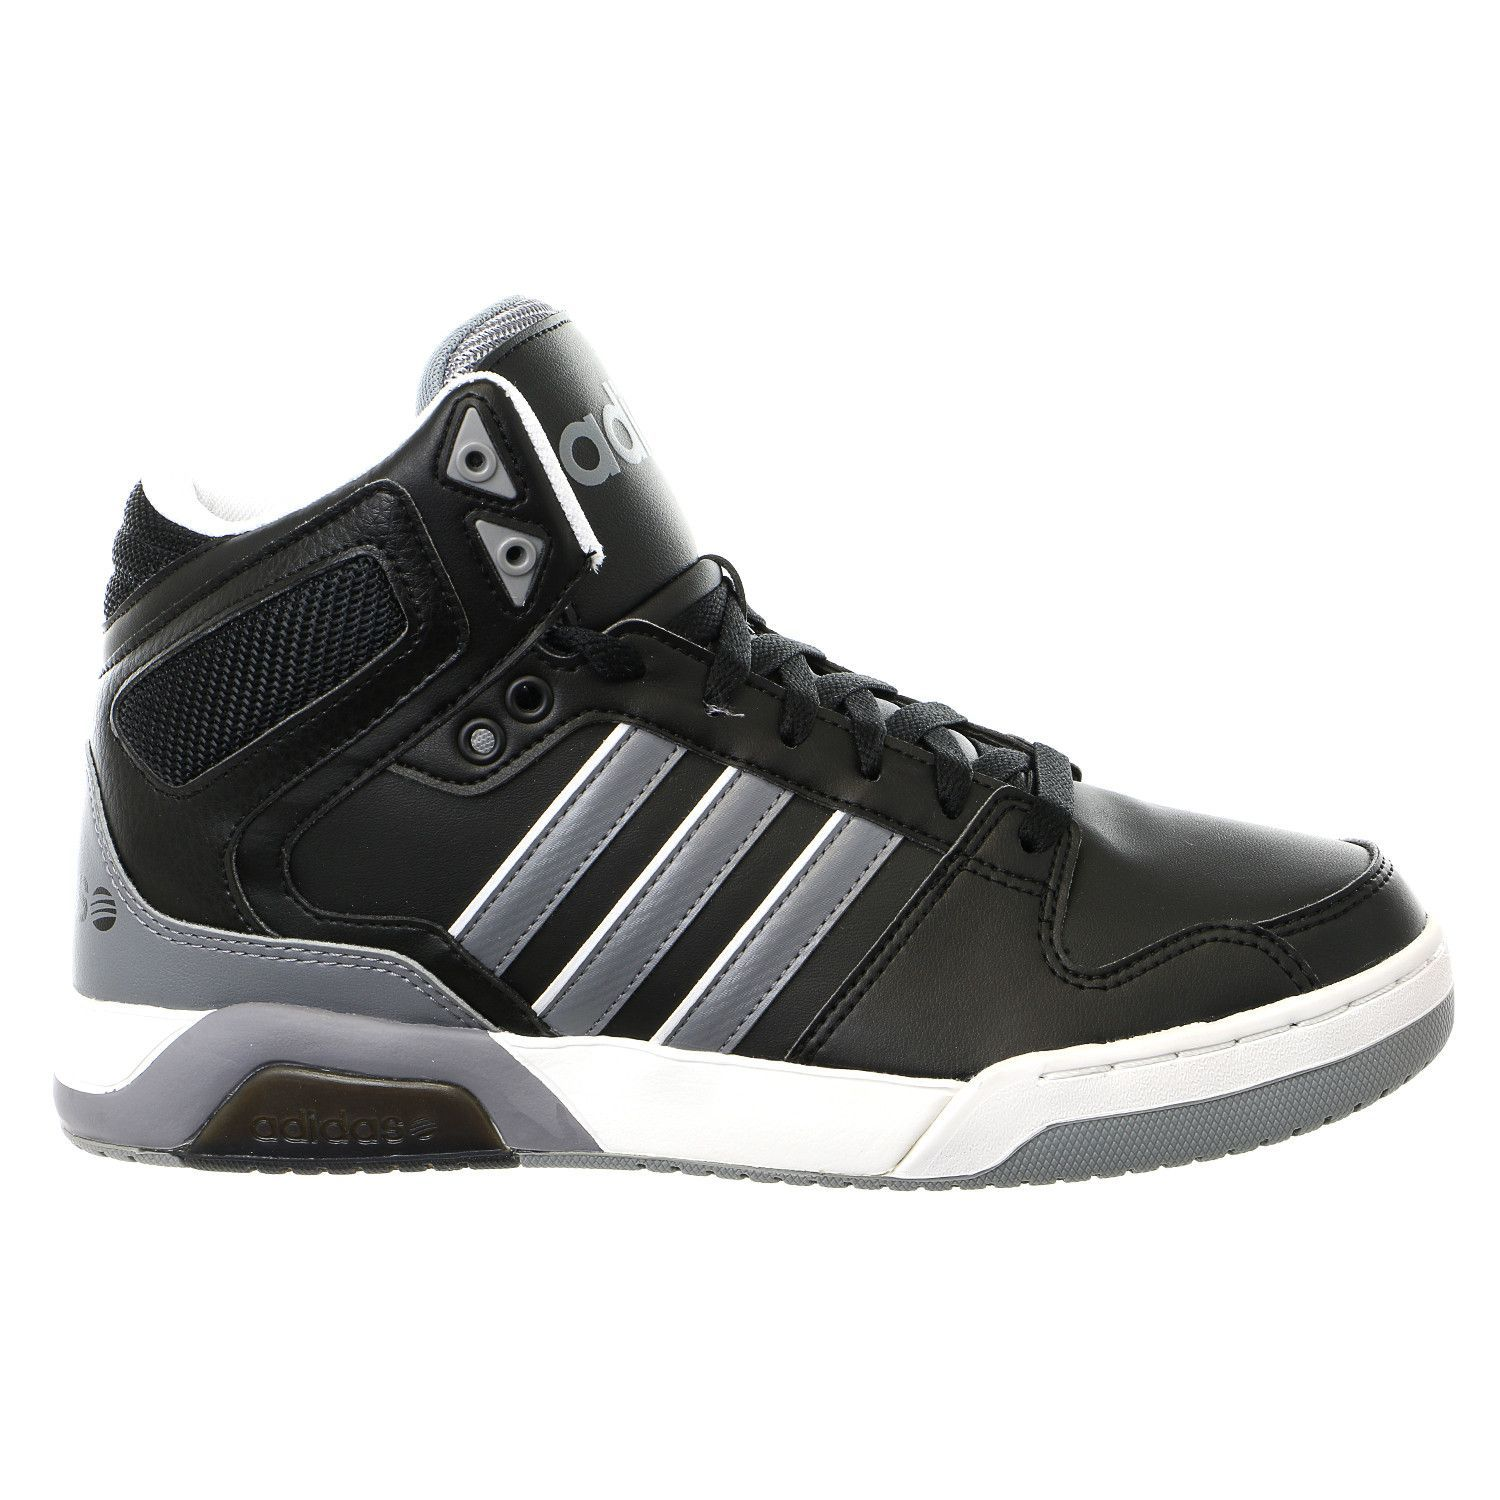 adidas neo bb9tis basketball shoes